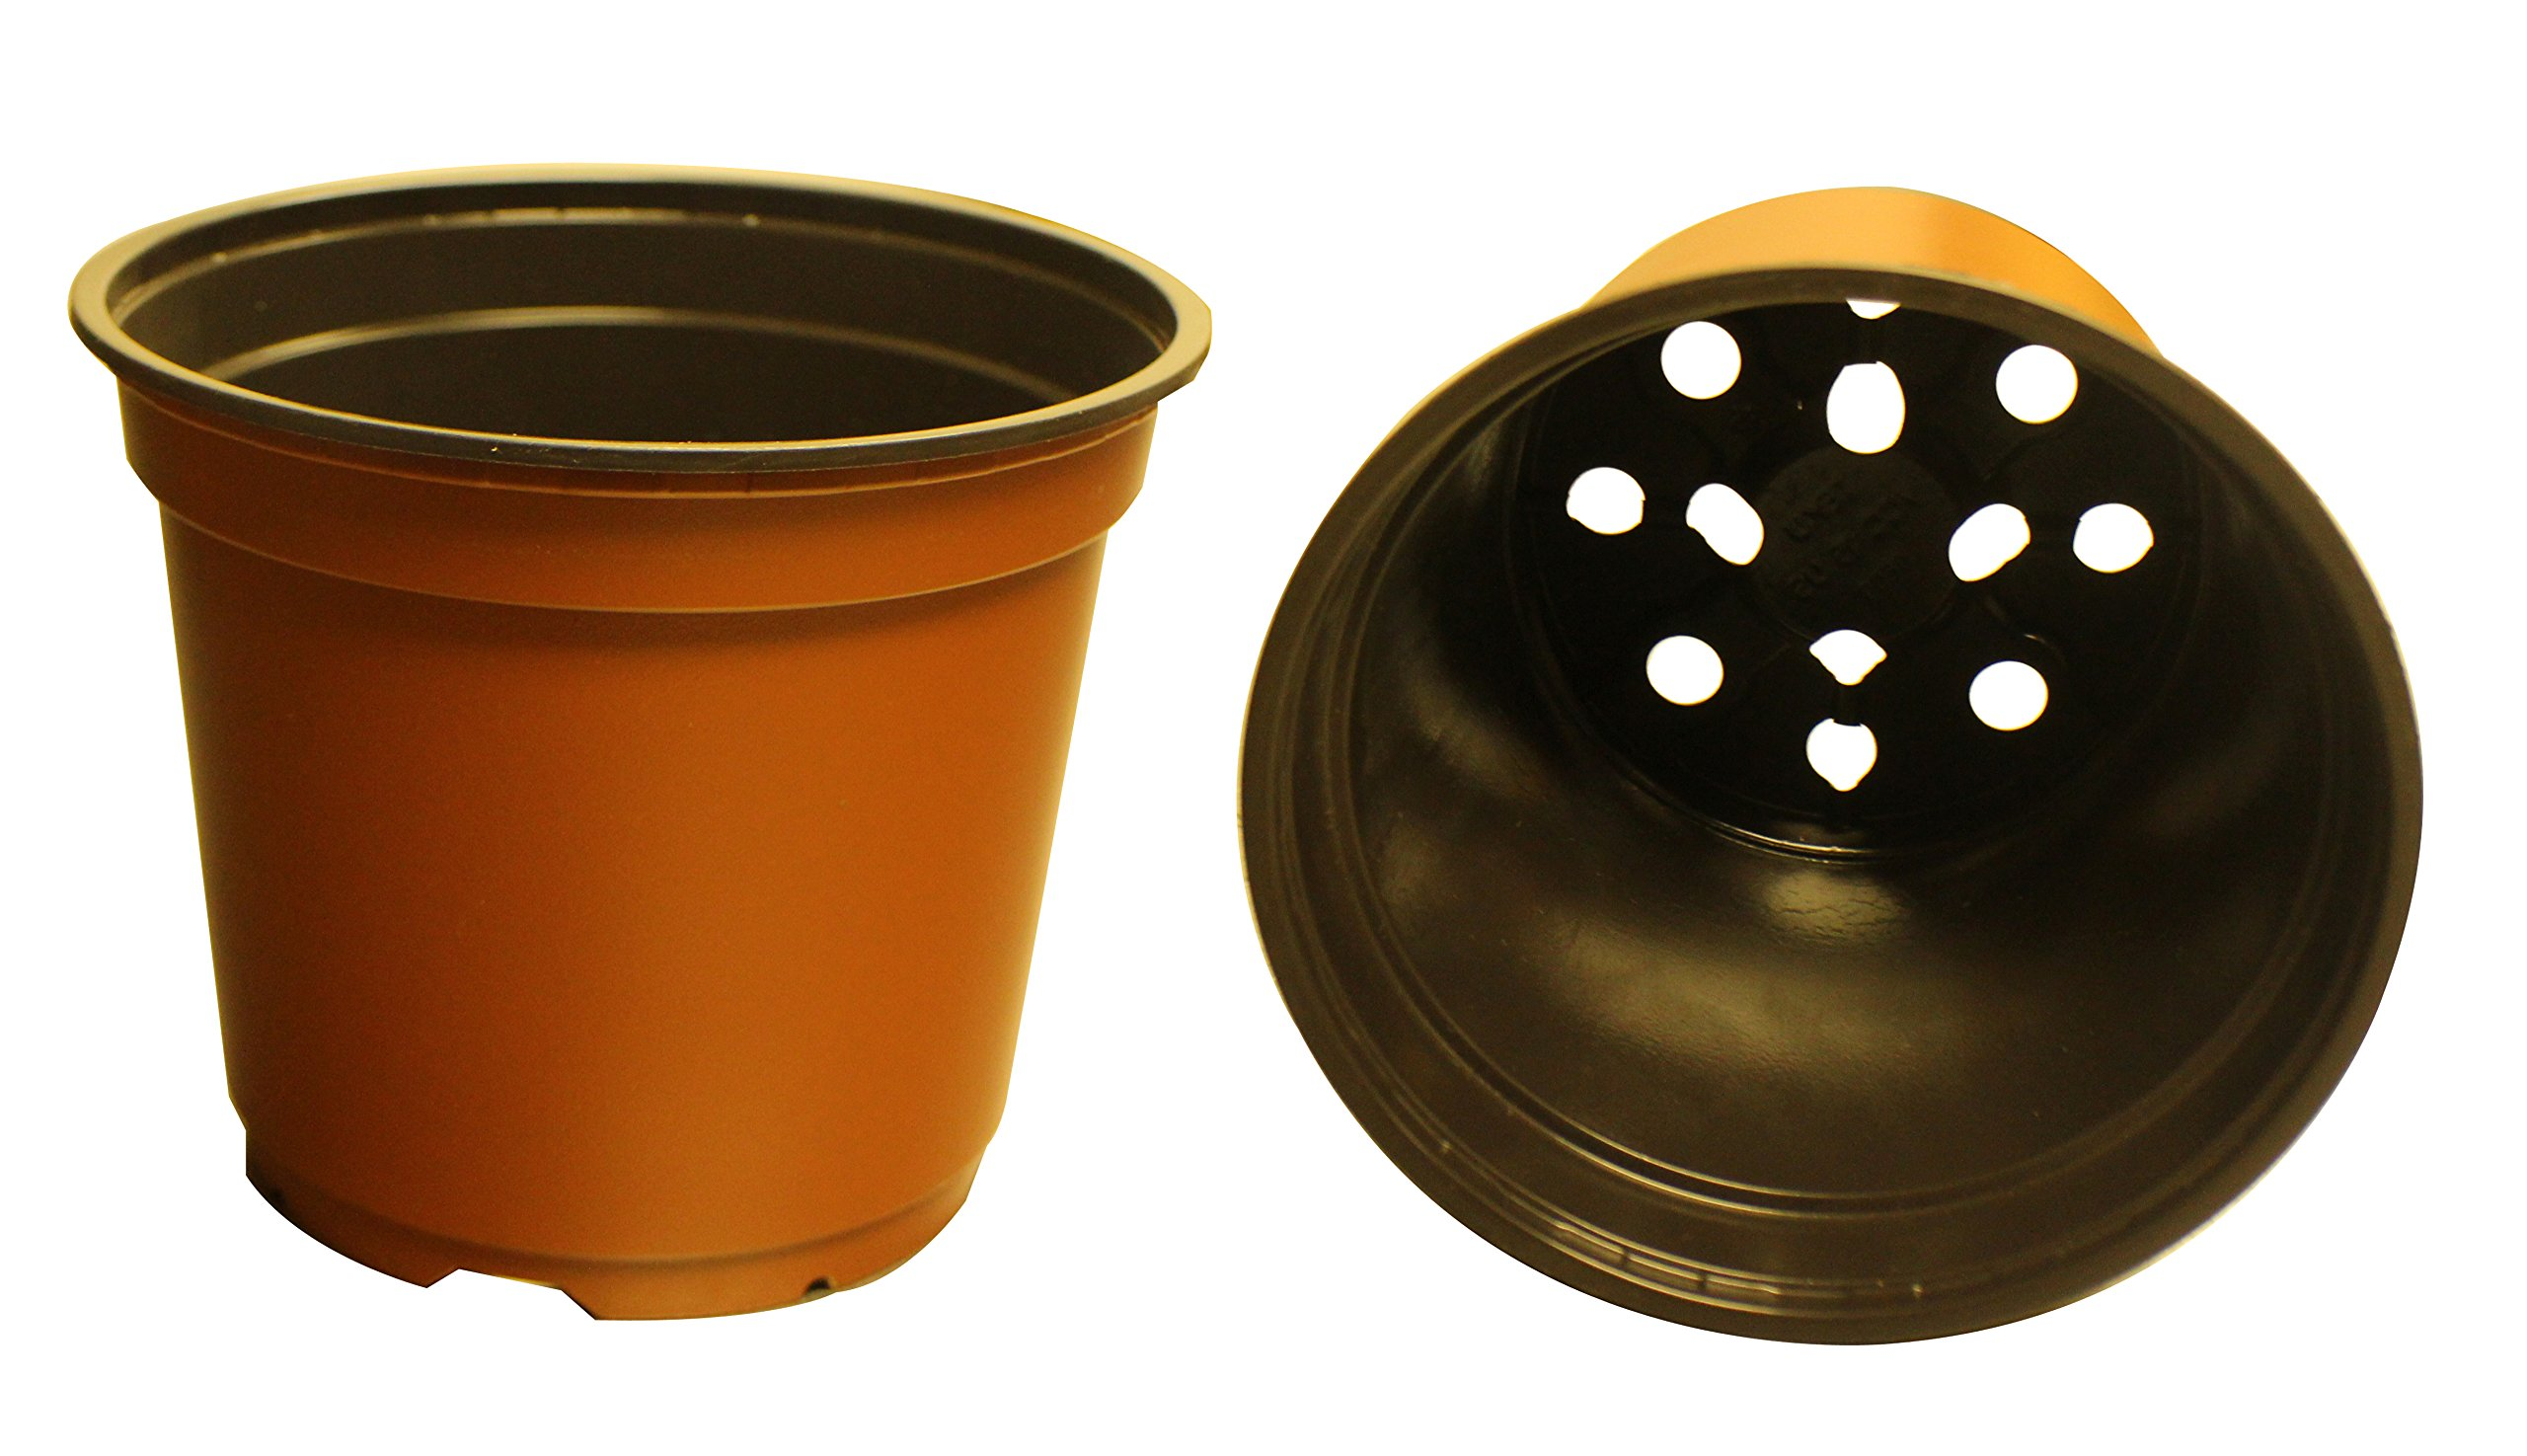 20 NEW 6 Inch TEKU Plastic Nursery Pots - Standard ~ Pots ARE 6 Inch Round At the Top and 5 Inch Deep. Color: Terracotta